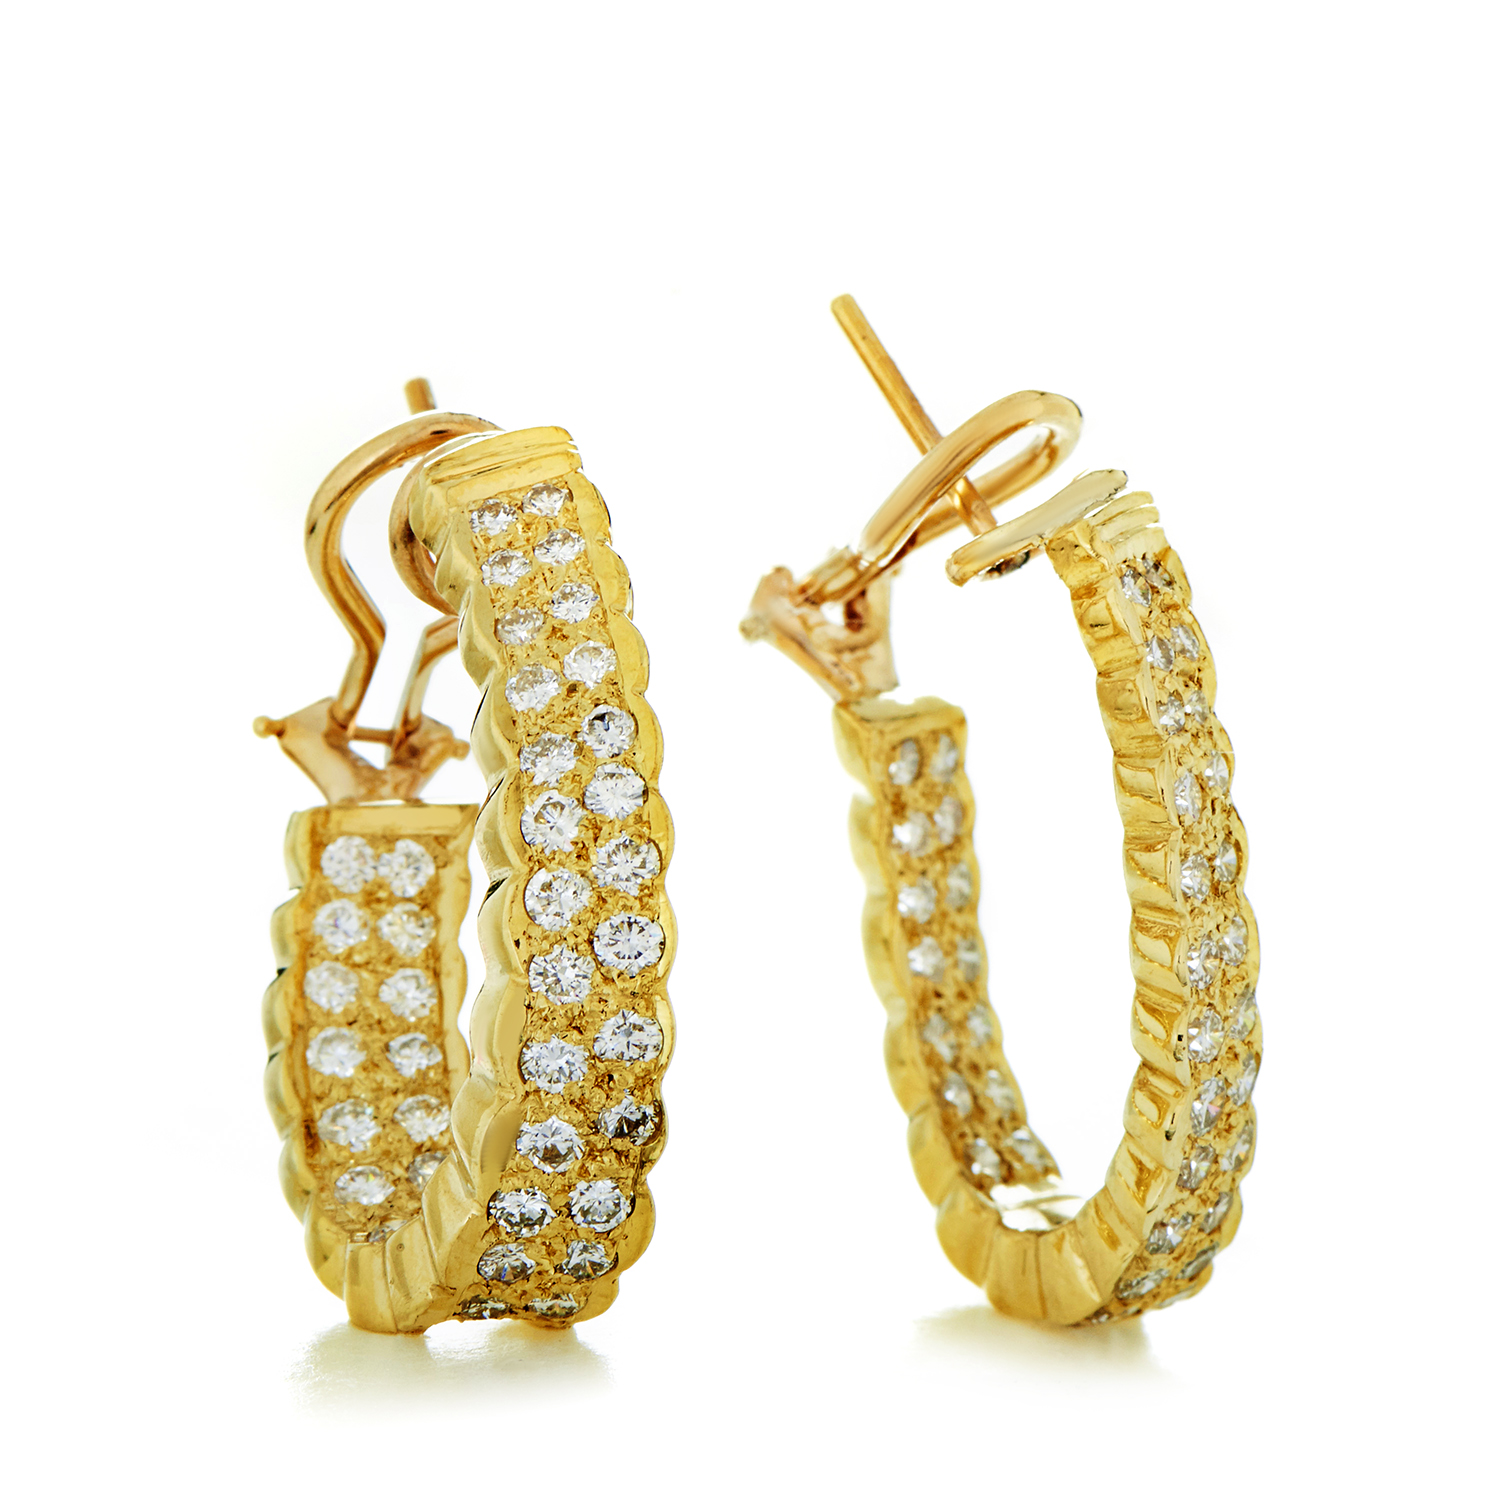 Women's 18K Yellow Gold Diamond Pave Hoop Earrings SN0107424AE